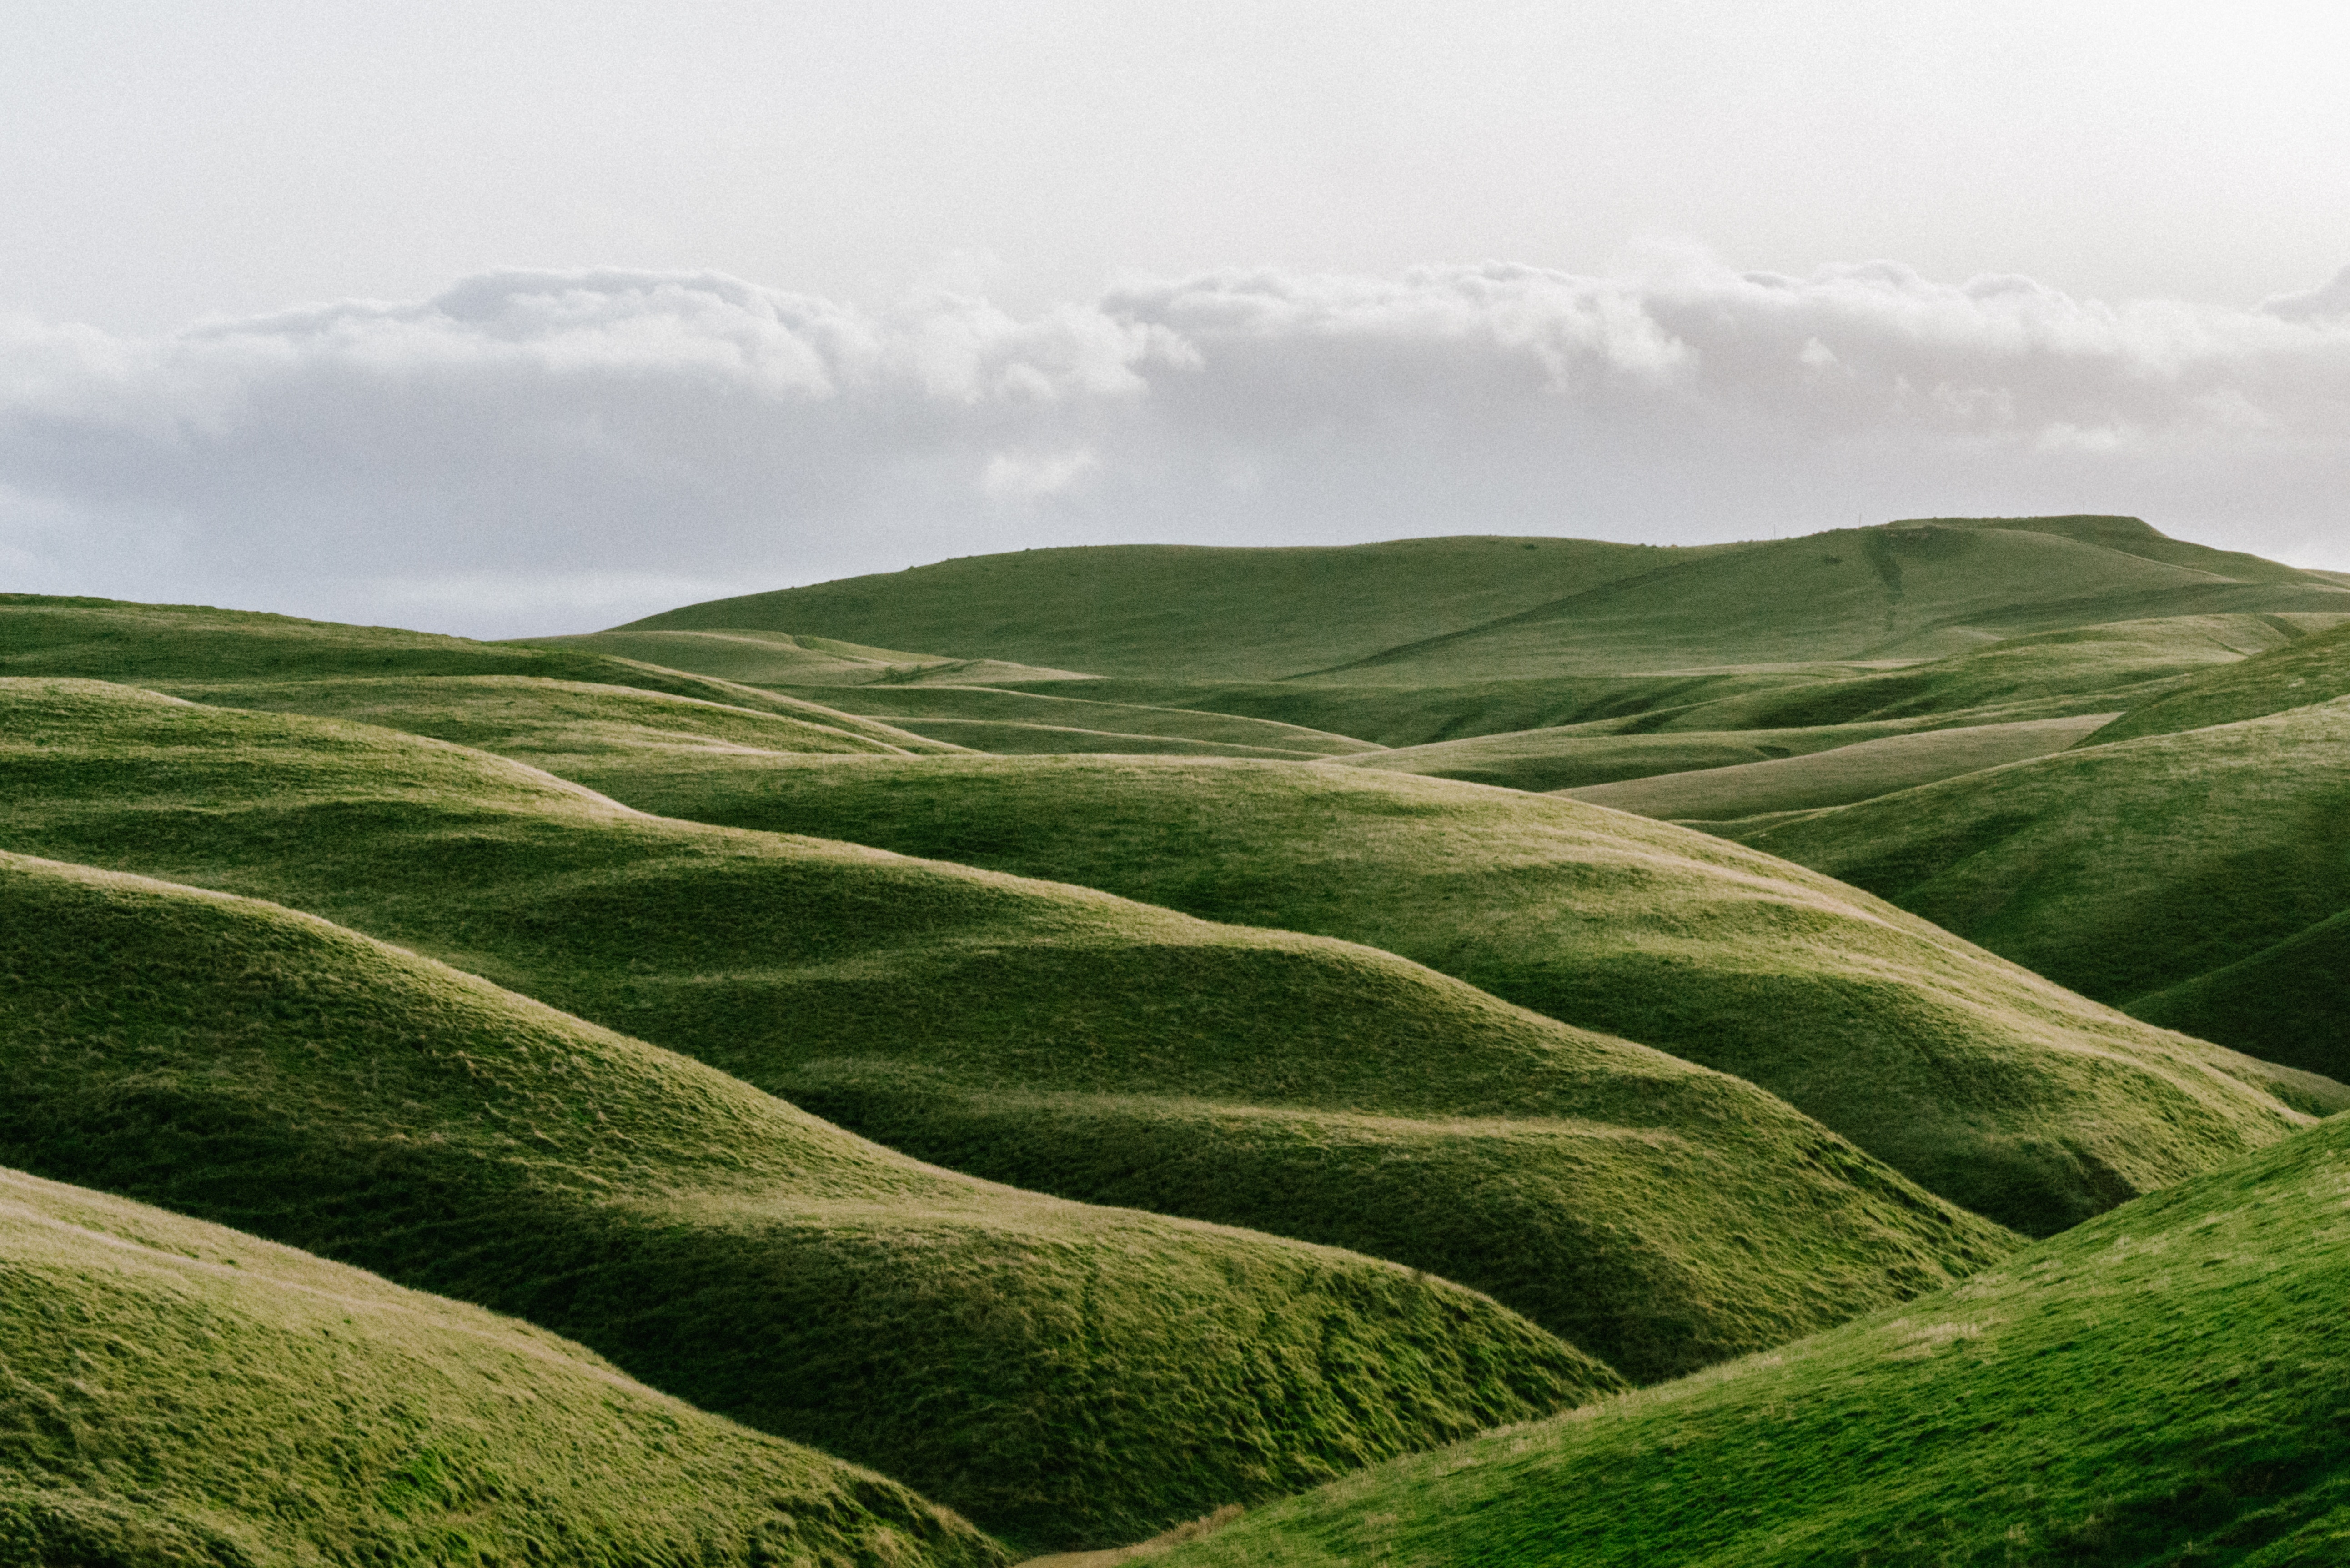 Beautiful green hills representing the experience of using Mailchimp, email automatisation tool, which often times feels like a bumpy ride.